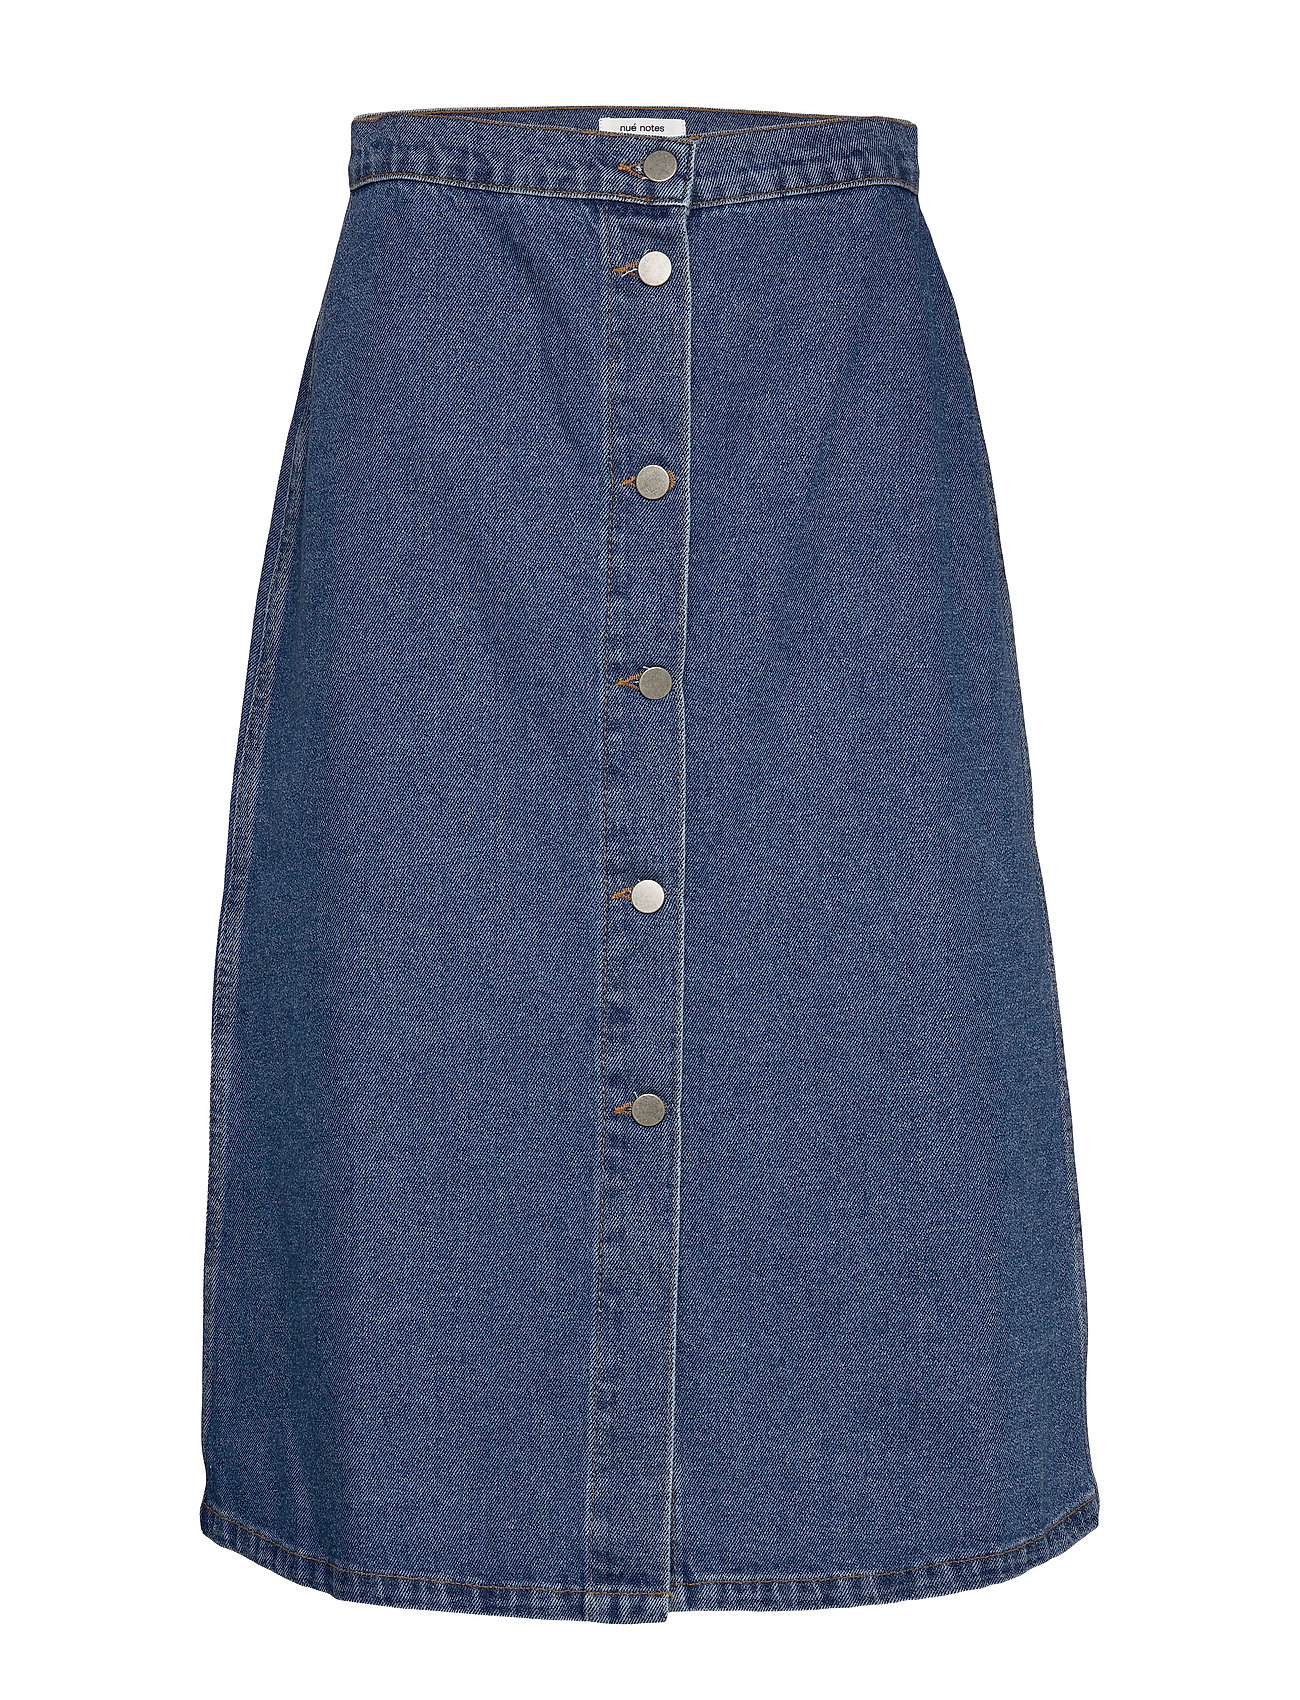 nué notes Elissa Skirt - DARK DENIM